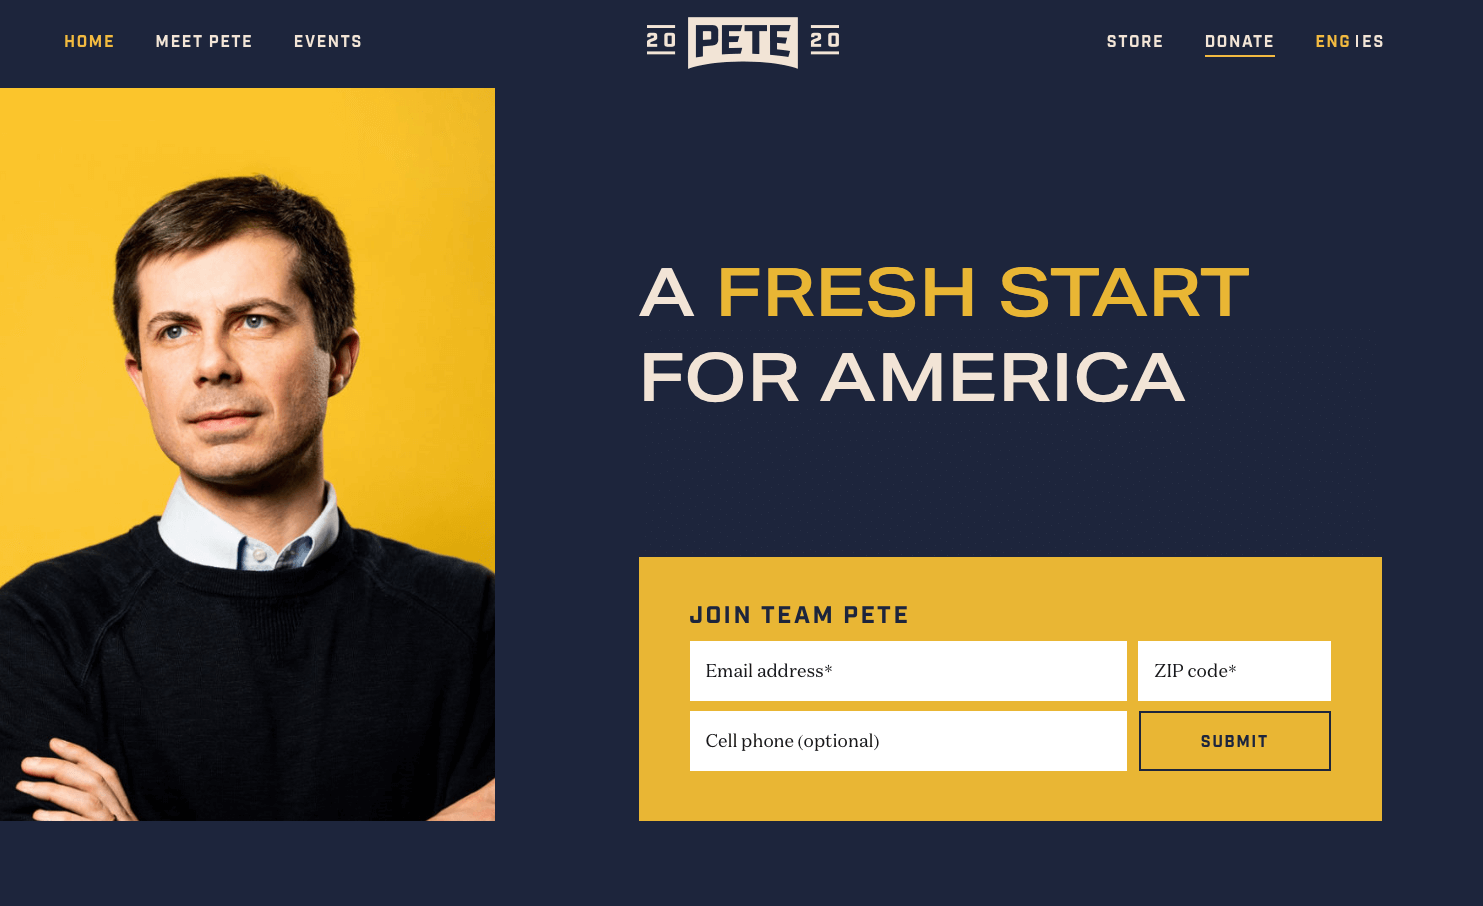 Pete Buttigieg presidential candidate home page - Screen shot from THAT Branding Company Newcastle Upon Tyne.png